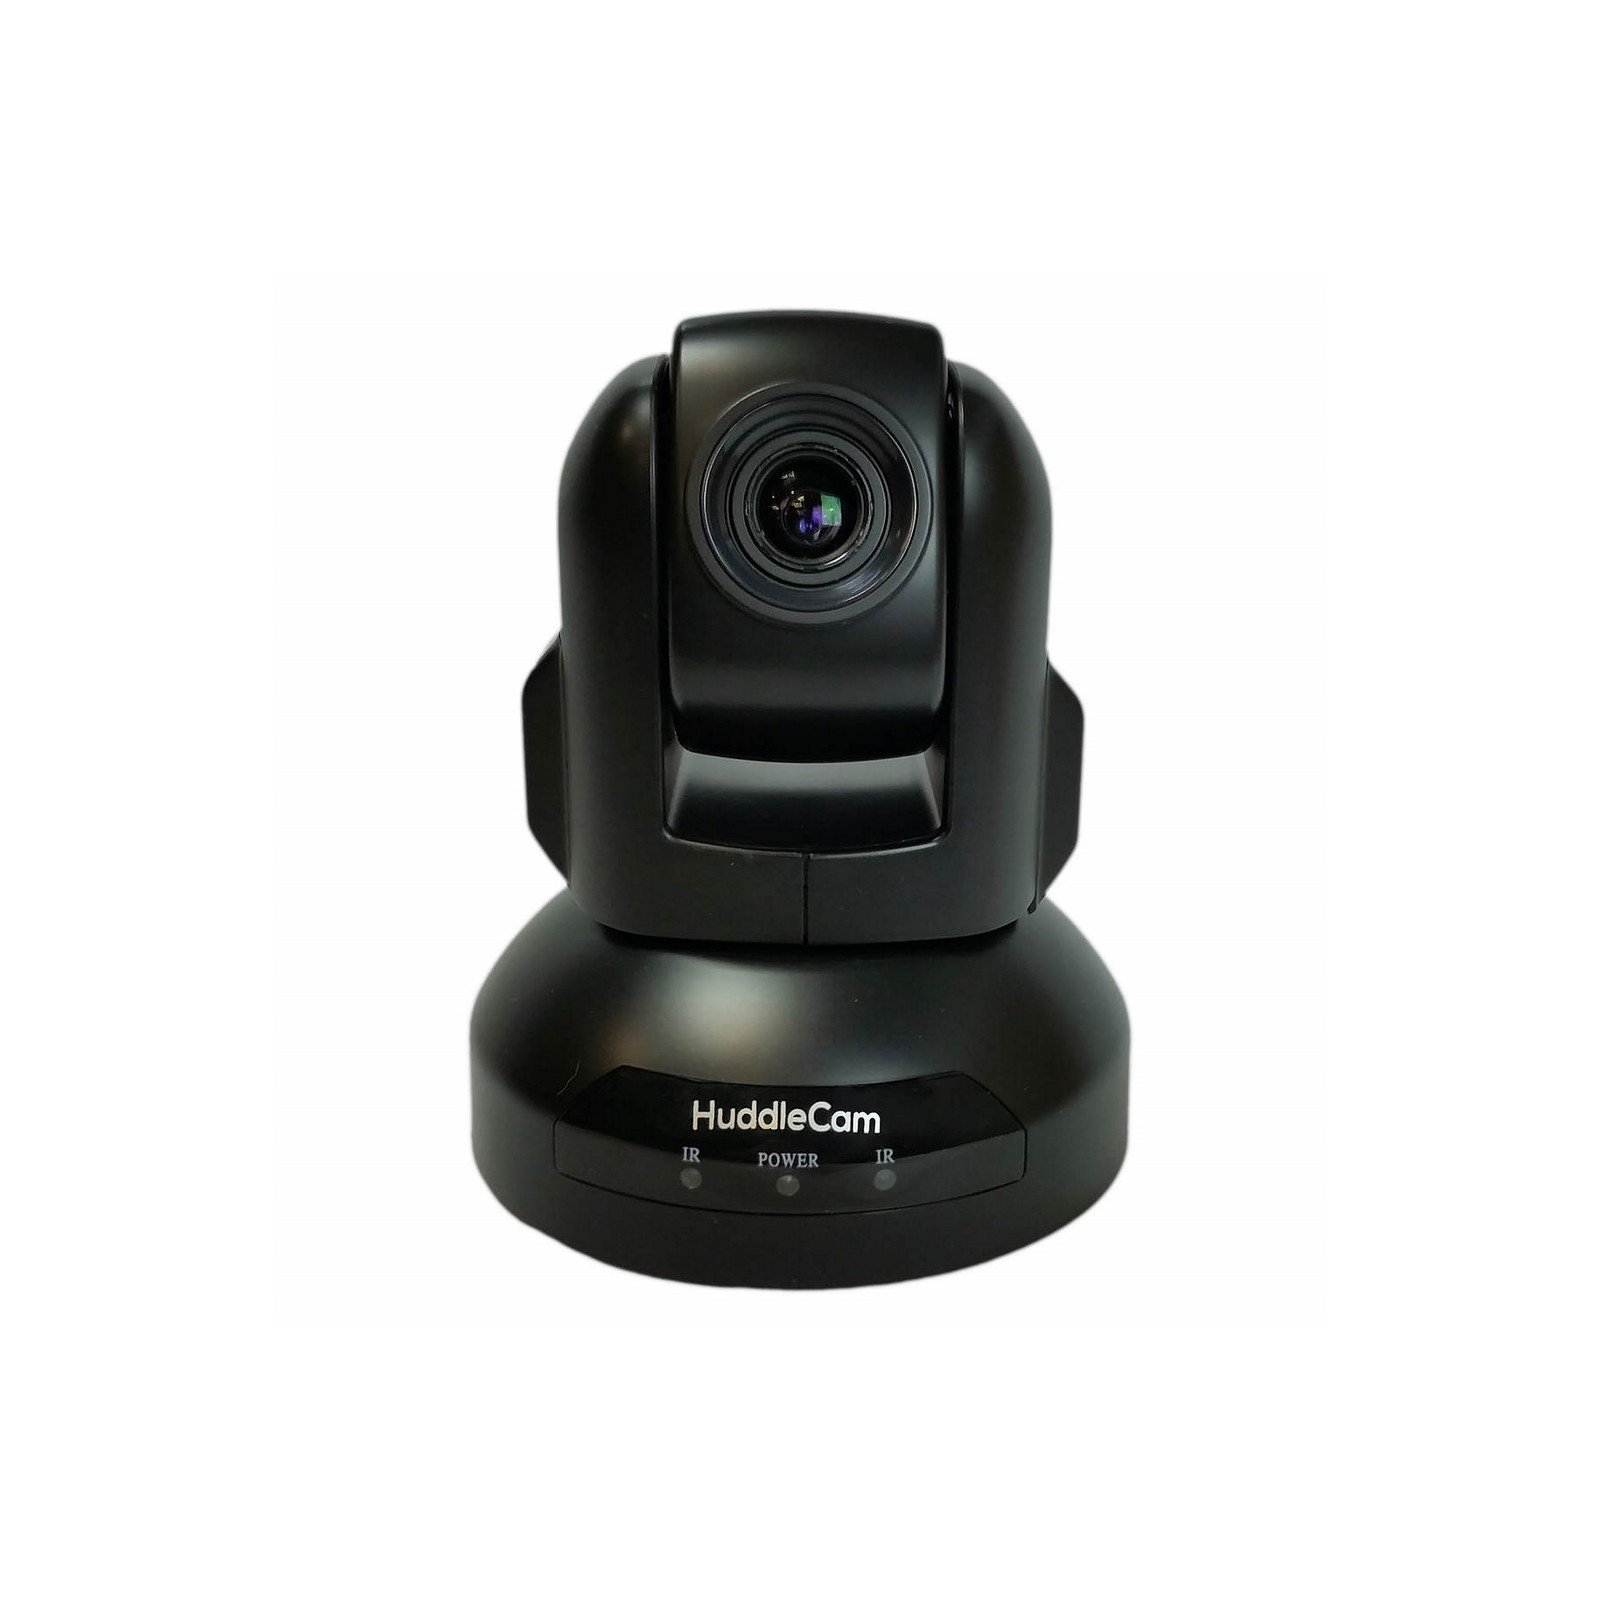 HuddleCamHD 2.1MP 720p Indoor USB 2.0 PTZ Conferencing Camera, 10x Optical Zoom, 30fps, 57deg. FOV, Black